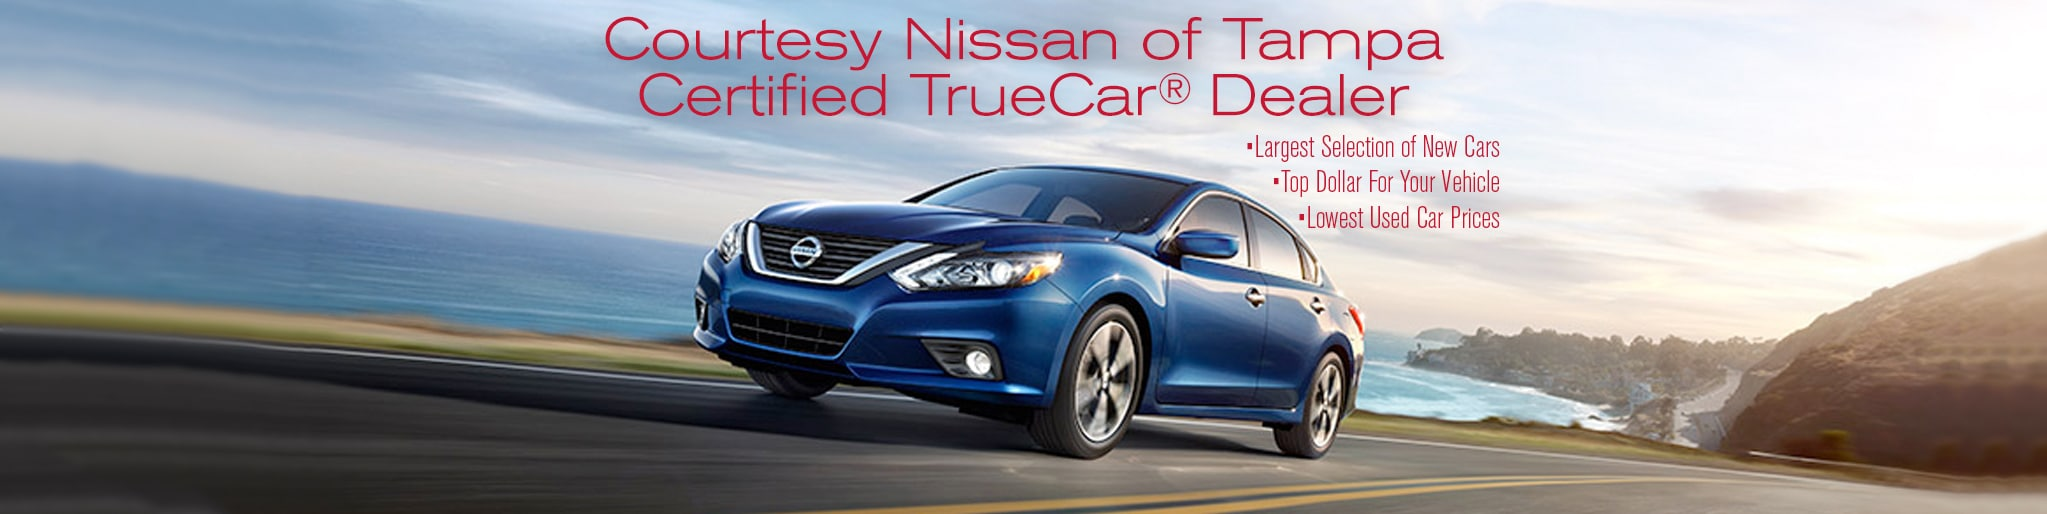 Courtesy Nissan of Tampa   New Nissan dealership in Tampa, FL 33614